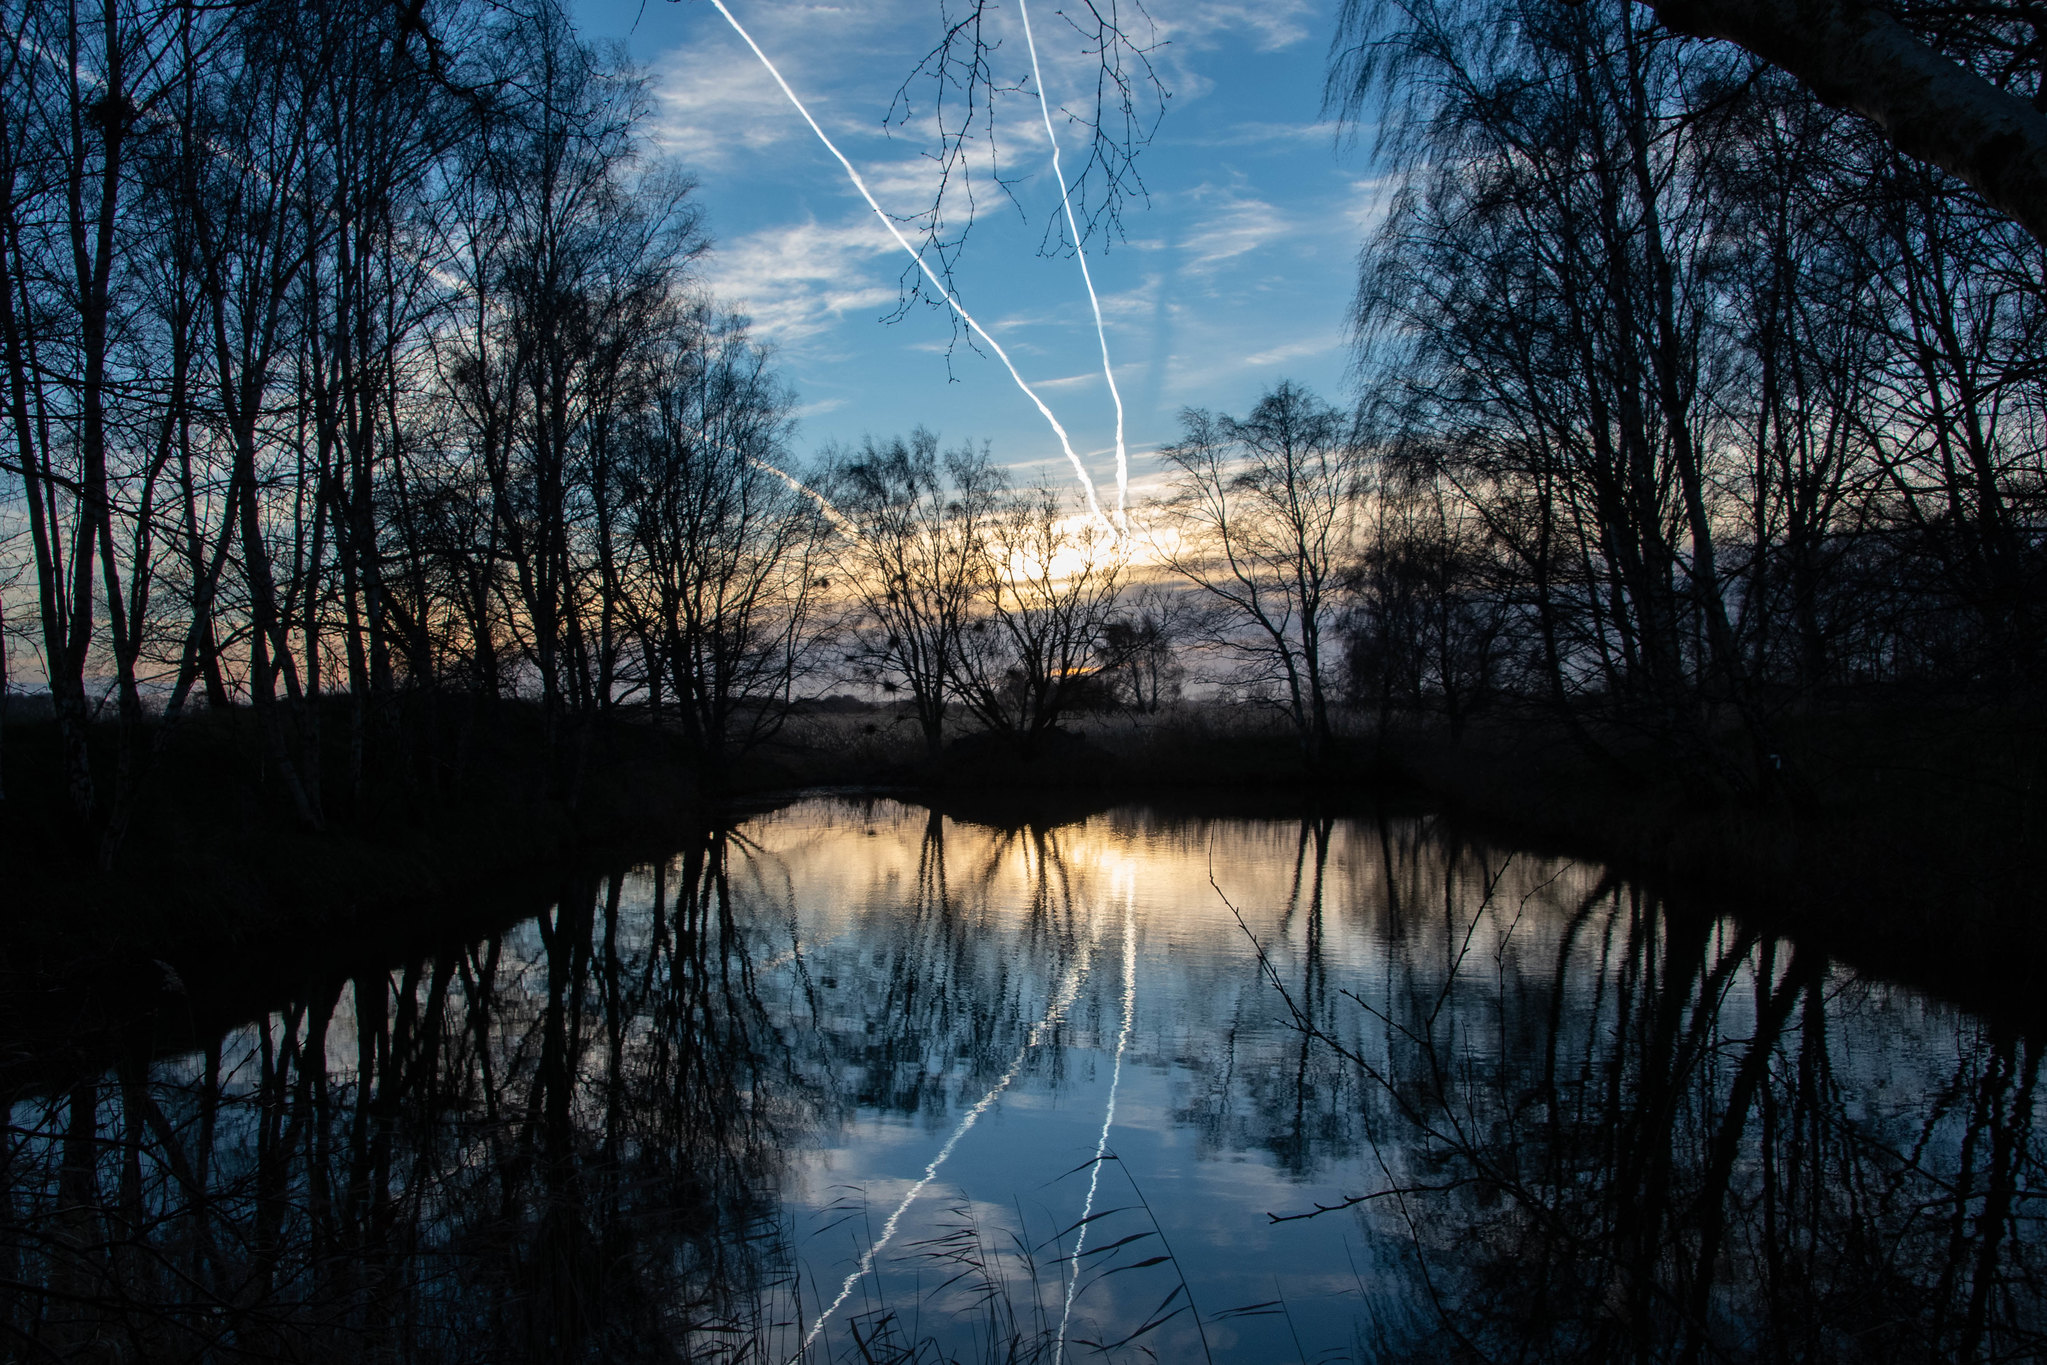 Flight tracks in sky and water.jpg